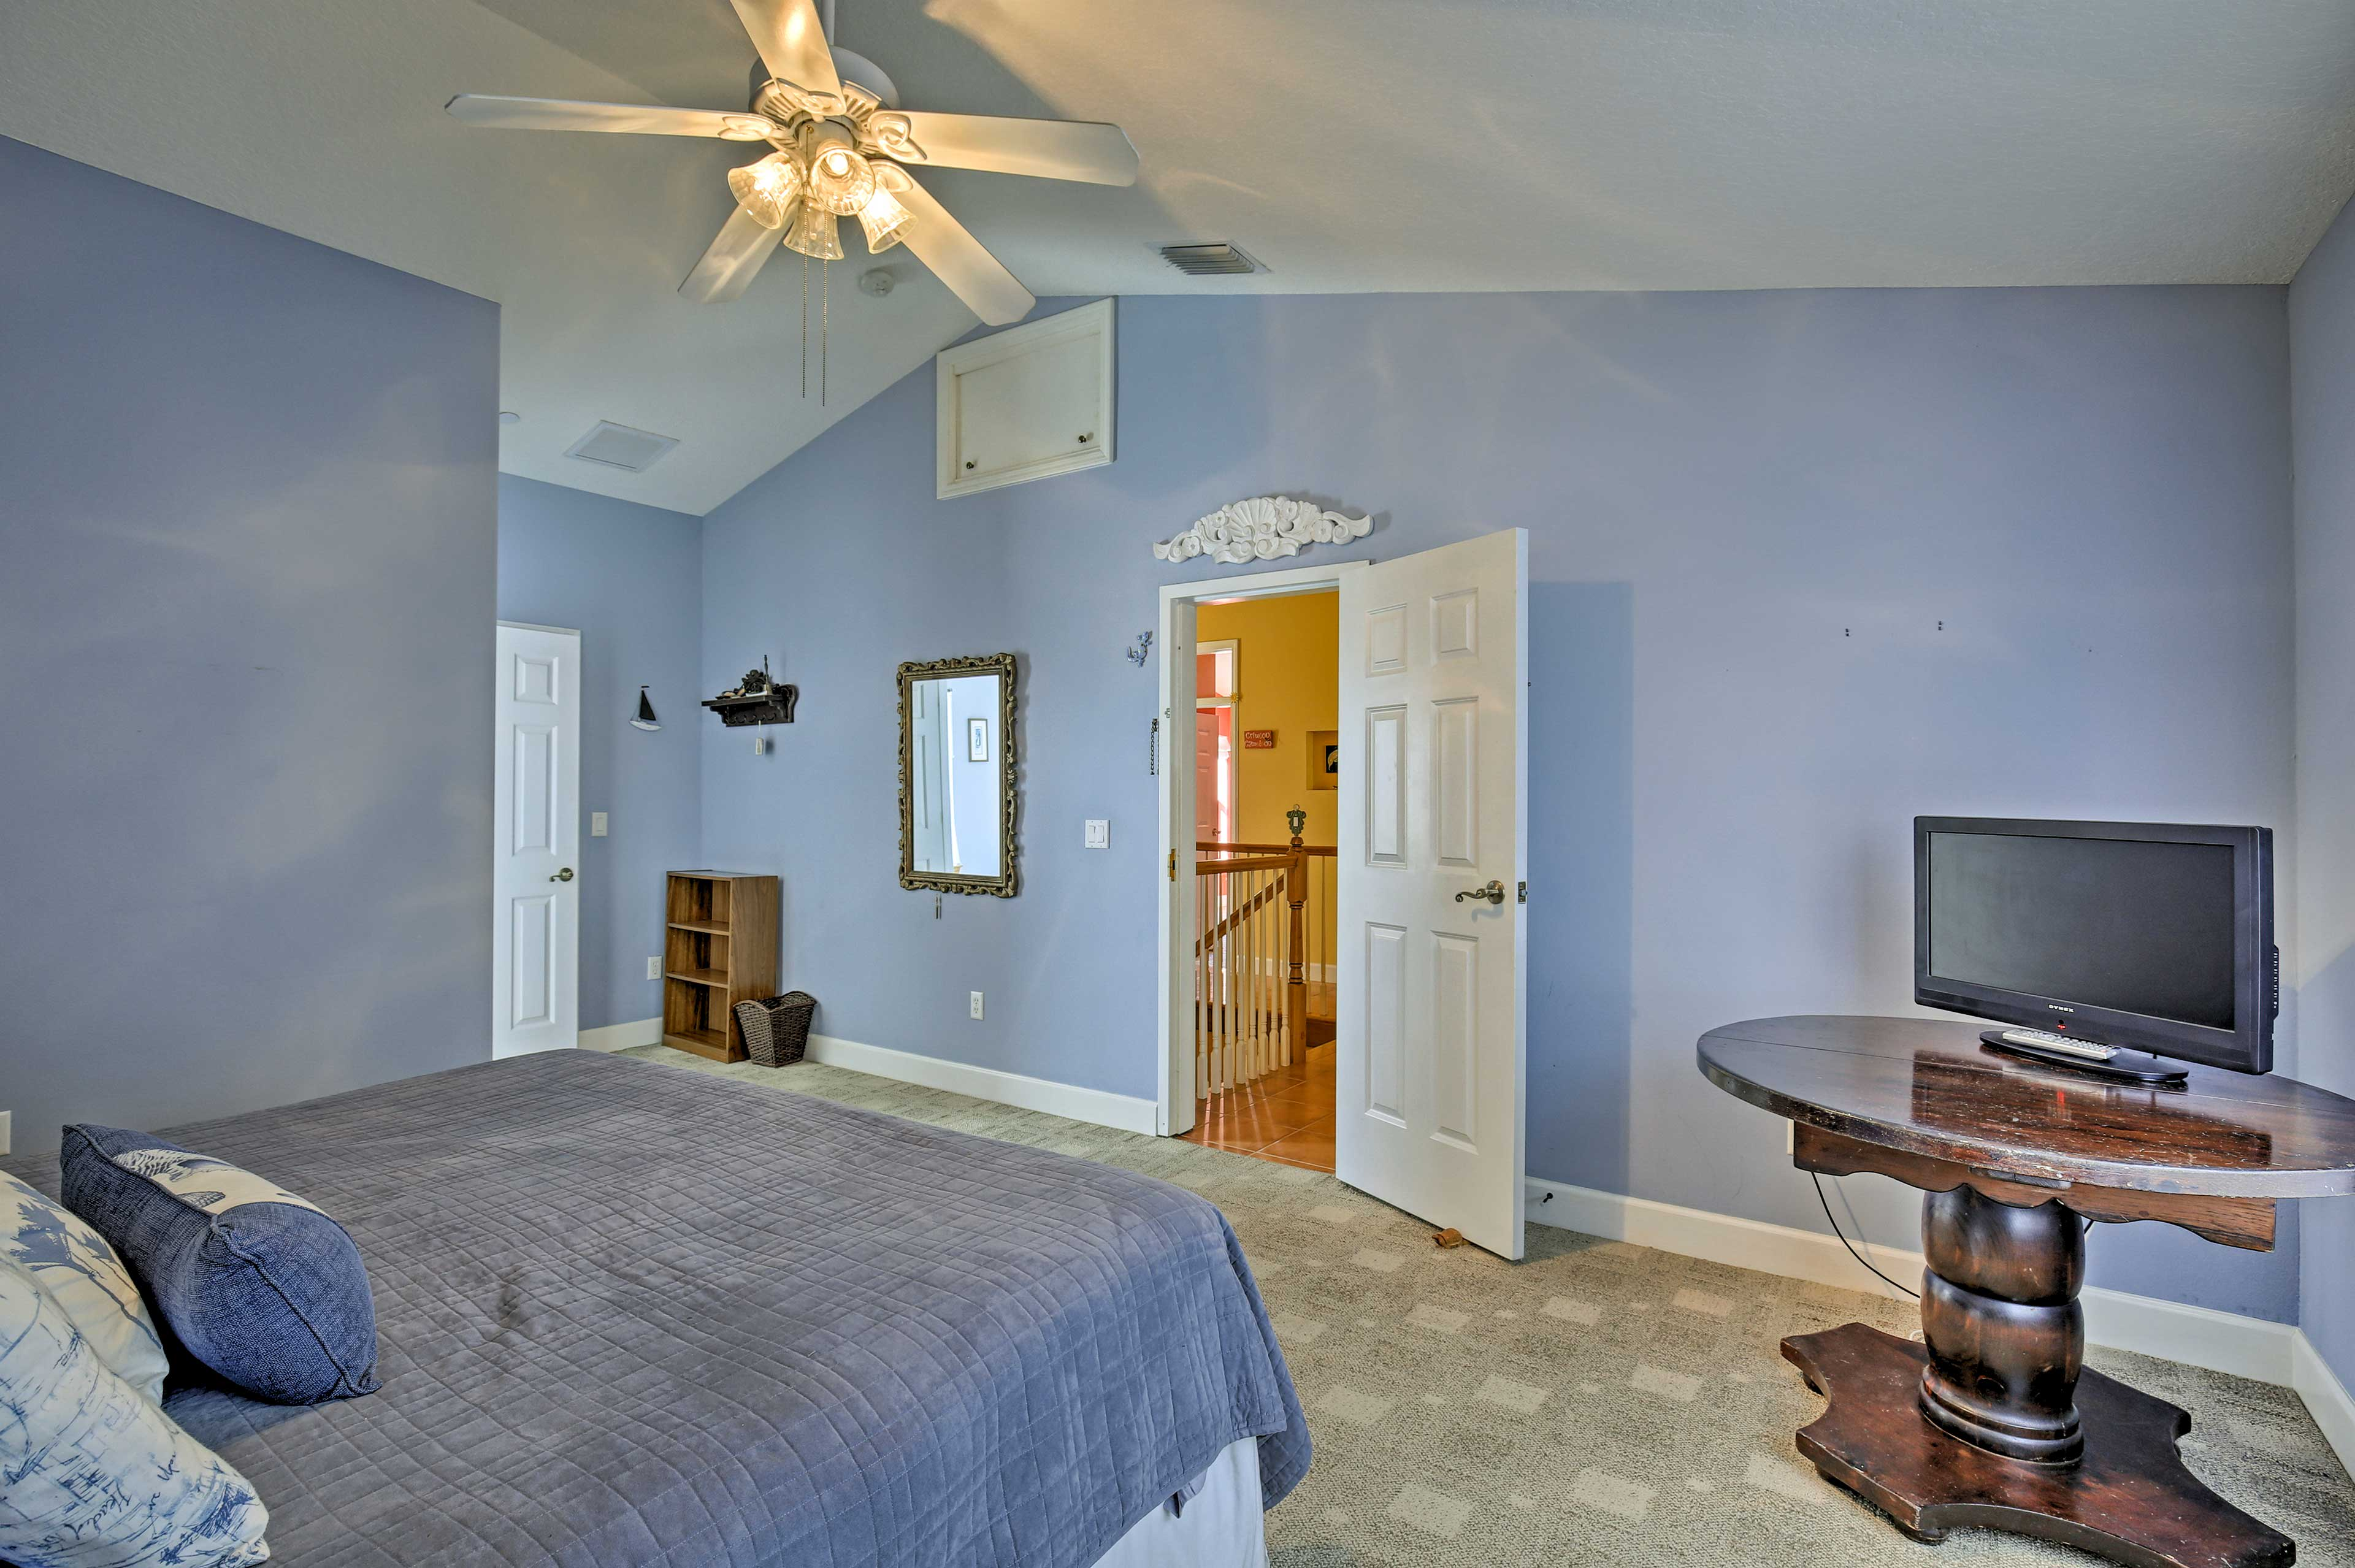 Lie back on the king bed and watch the flat-screen TV in the fourth bedroom.